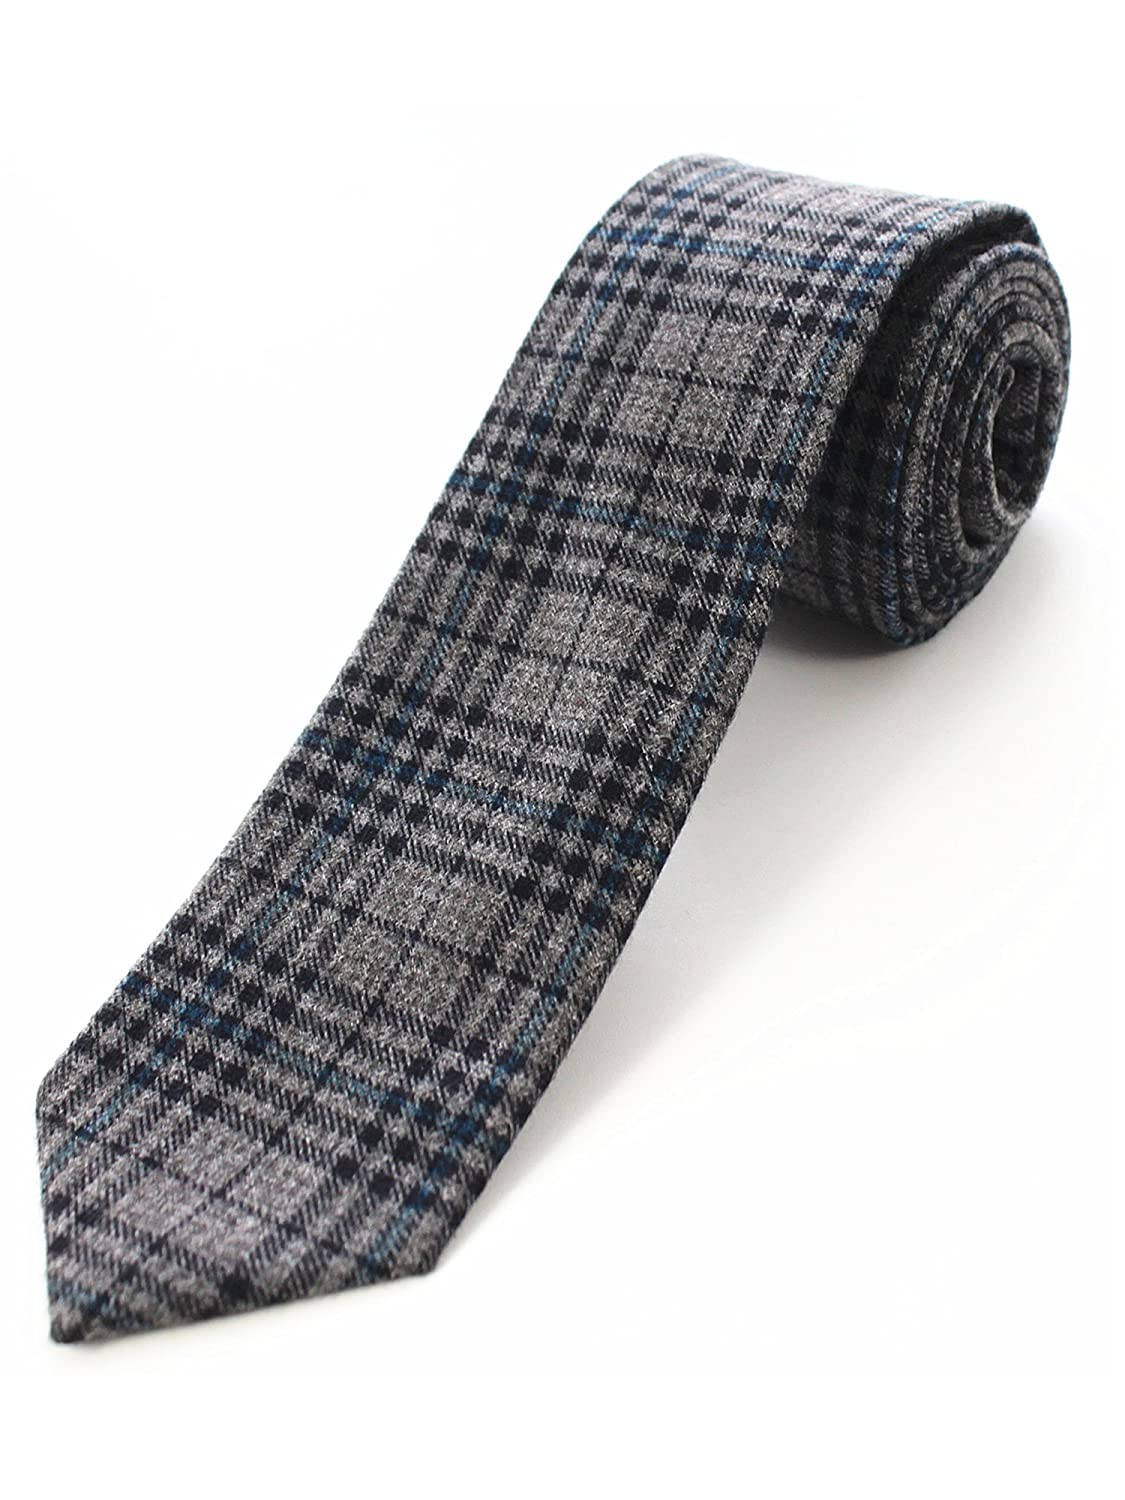 JEMYGINS 2.4 Mens Cotton Skinny Tie Plaid Striped Cashmere Wool Necktie